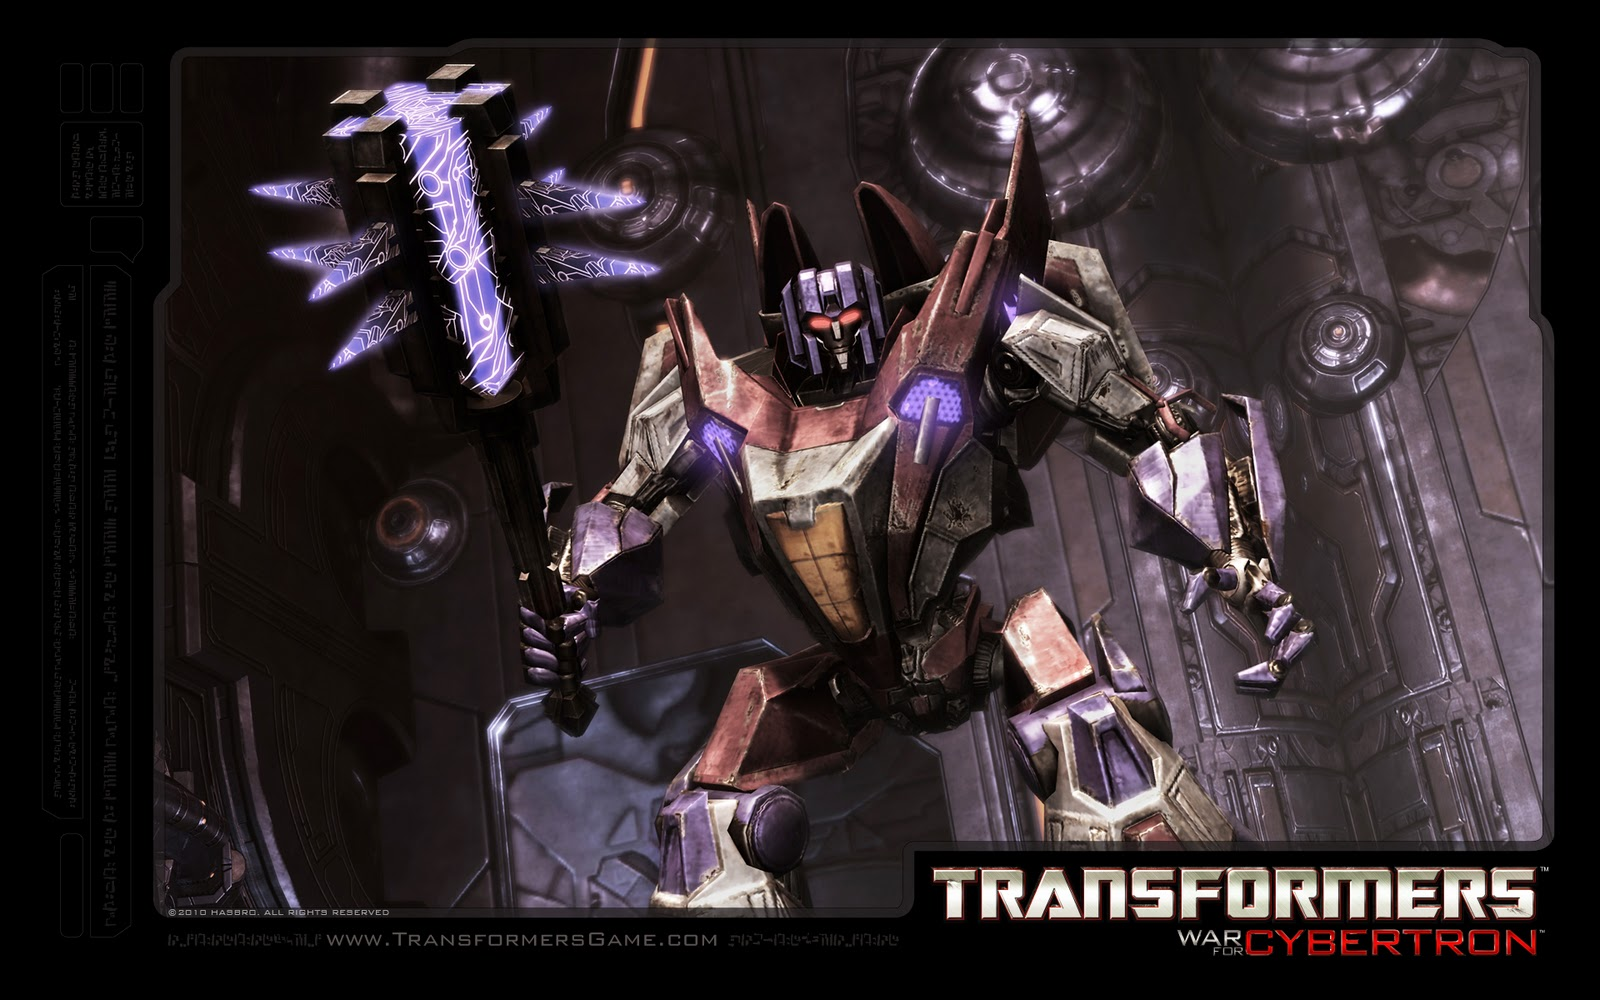 transformers matrix wallpapers: starscream war for cybertron 3d